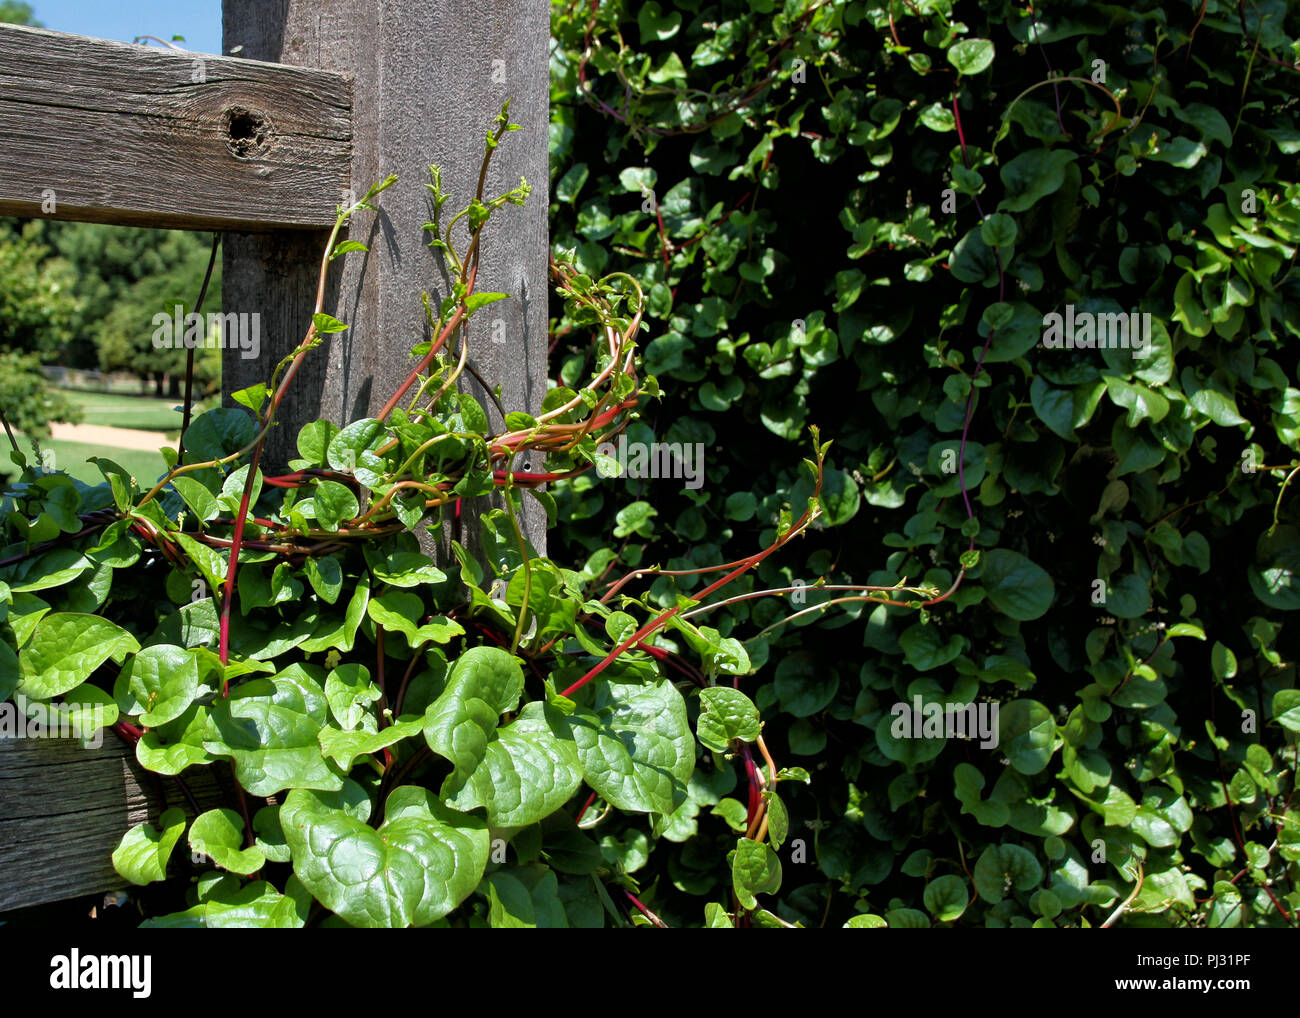 A Healthy And Prolific Vine Of Red Stemmed Malabar Spinach Is Climbing A  Wood Trellis